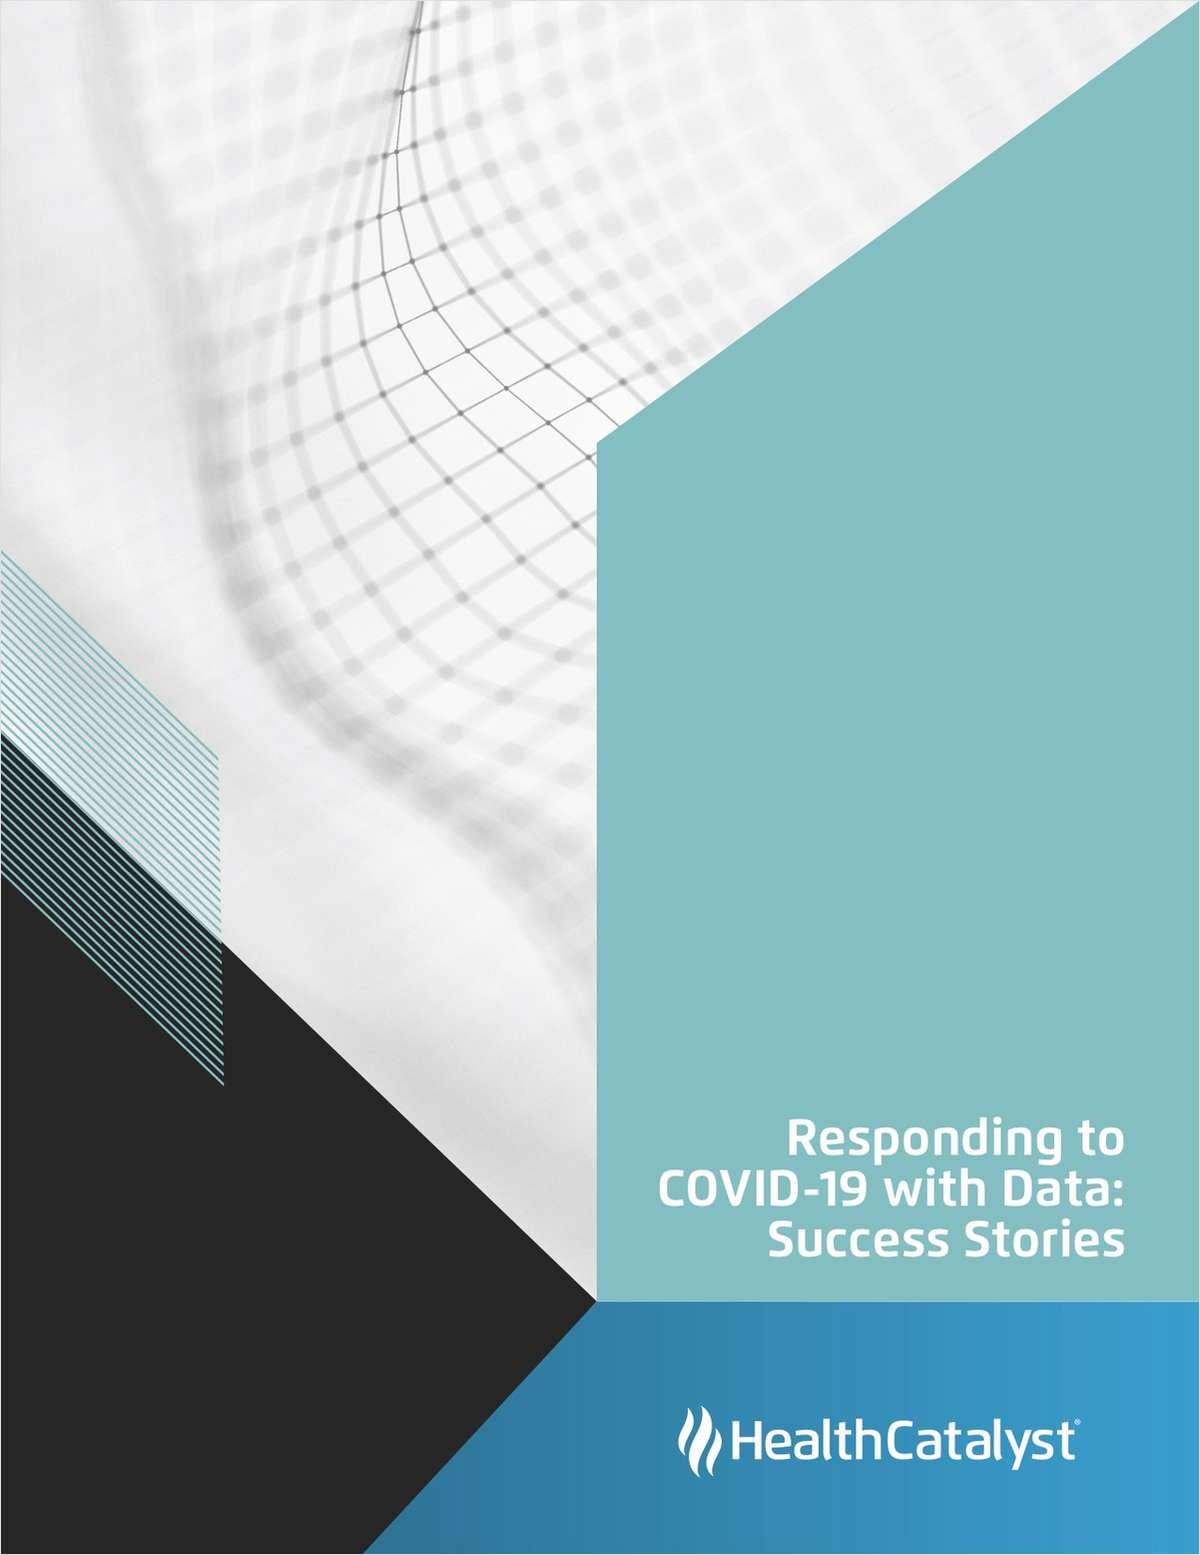 Responding to COVID-19 with Data: Success Stories